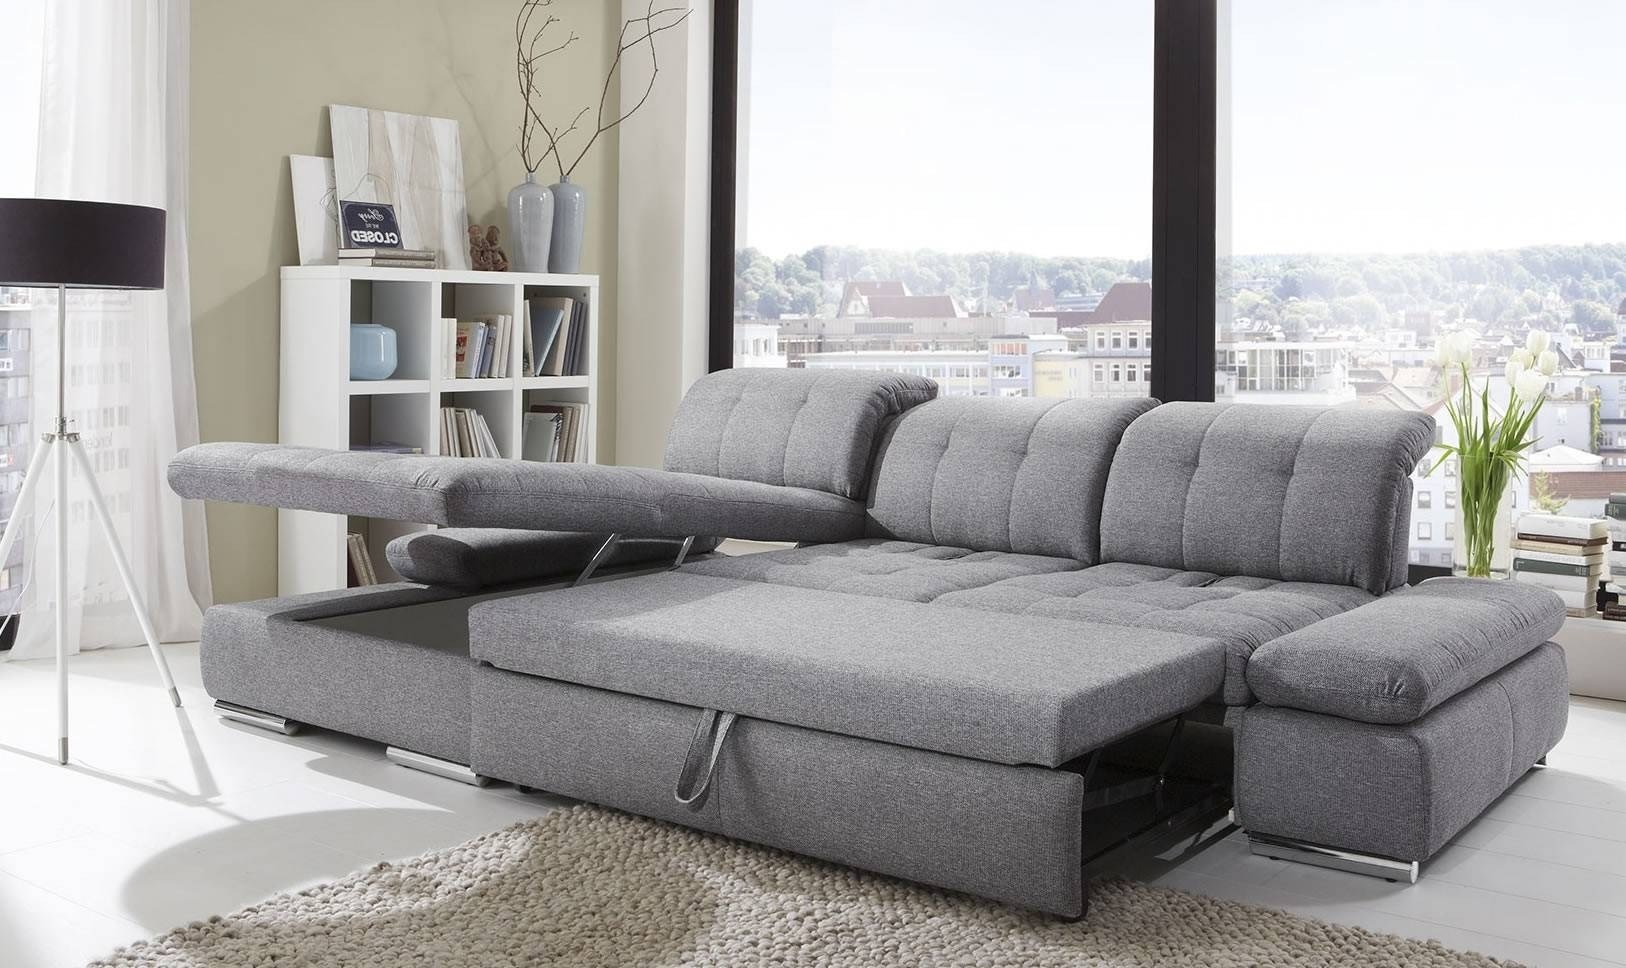 4 Best Sofa Beds   Most Comfortable Sleeper Sofas